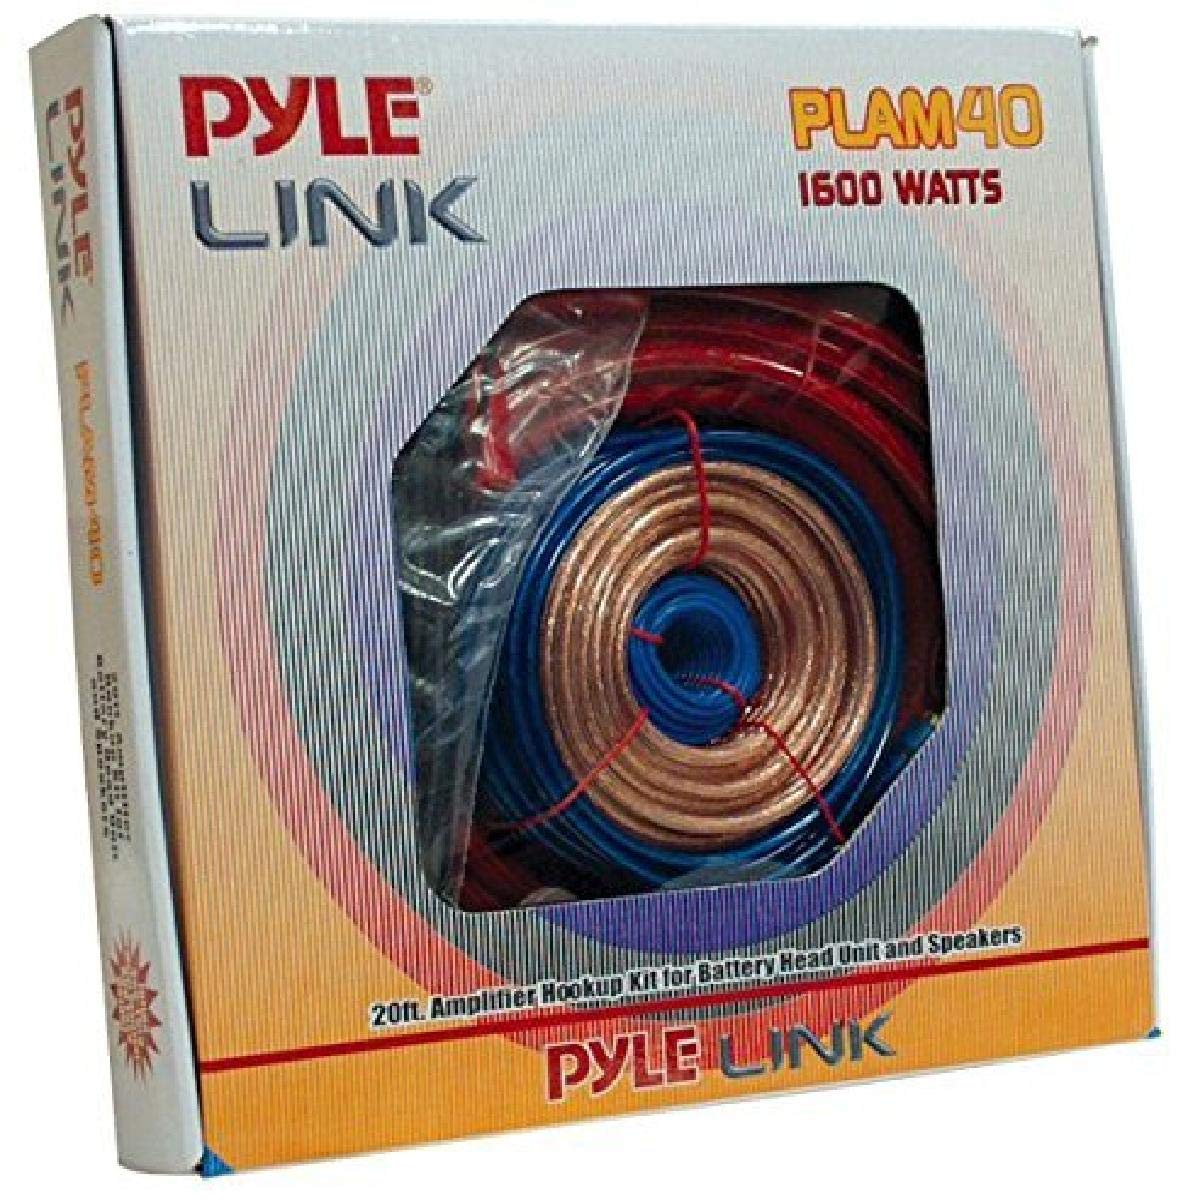 Pyle Car Stereo Wiring Kit - Audio Amplifier & Subwoofer Speaker Installation Cables (4 Gauge), Blue (PLAM40)